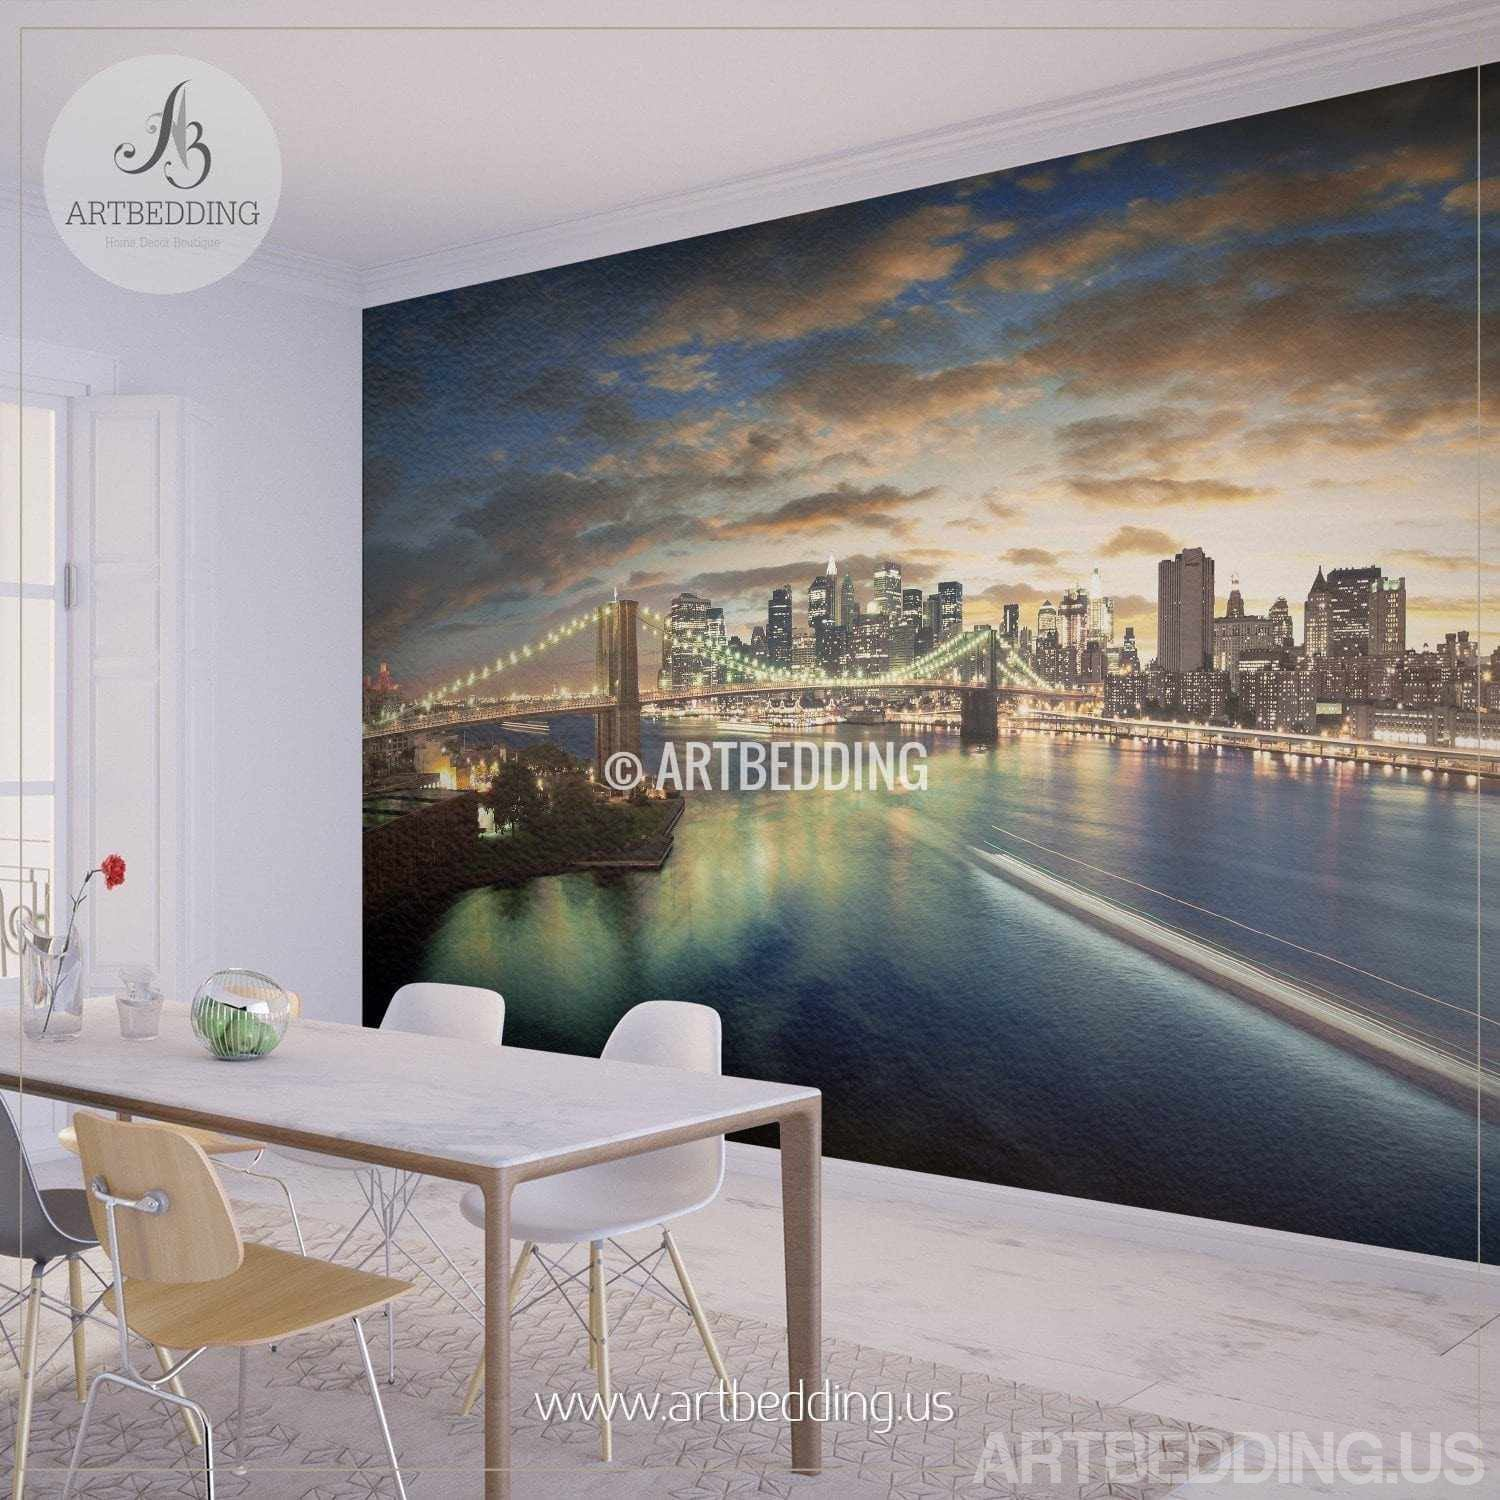 wall murals peel and stick self adhesive vinyl hd print page 2 new york cityscape wall mural new york sunset photo sticker new york downtown skyline